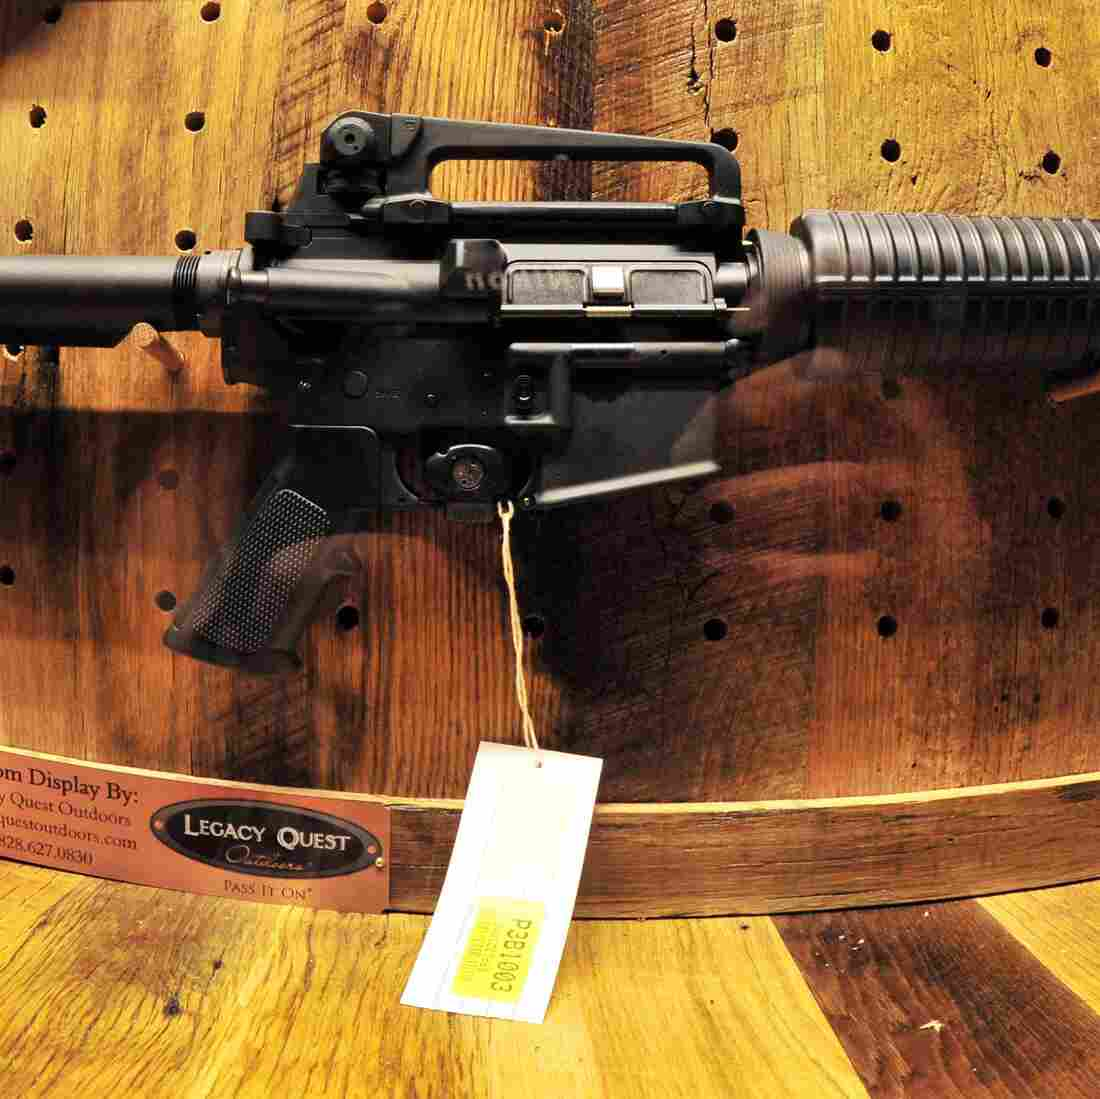 An AR-15 is displayed at a National Rifle Association Convention. This fall, Wal-Mart will end sales of military-style rifles like the AR-15.